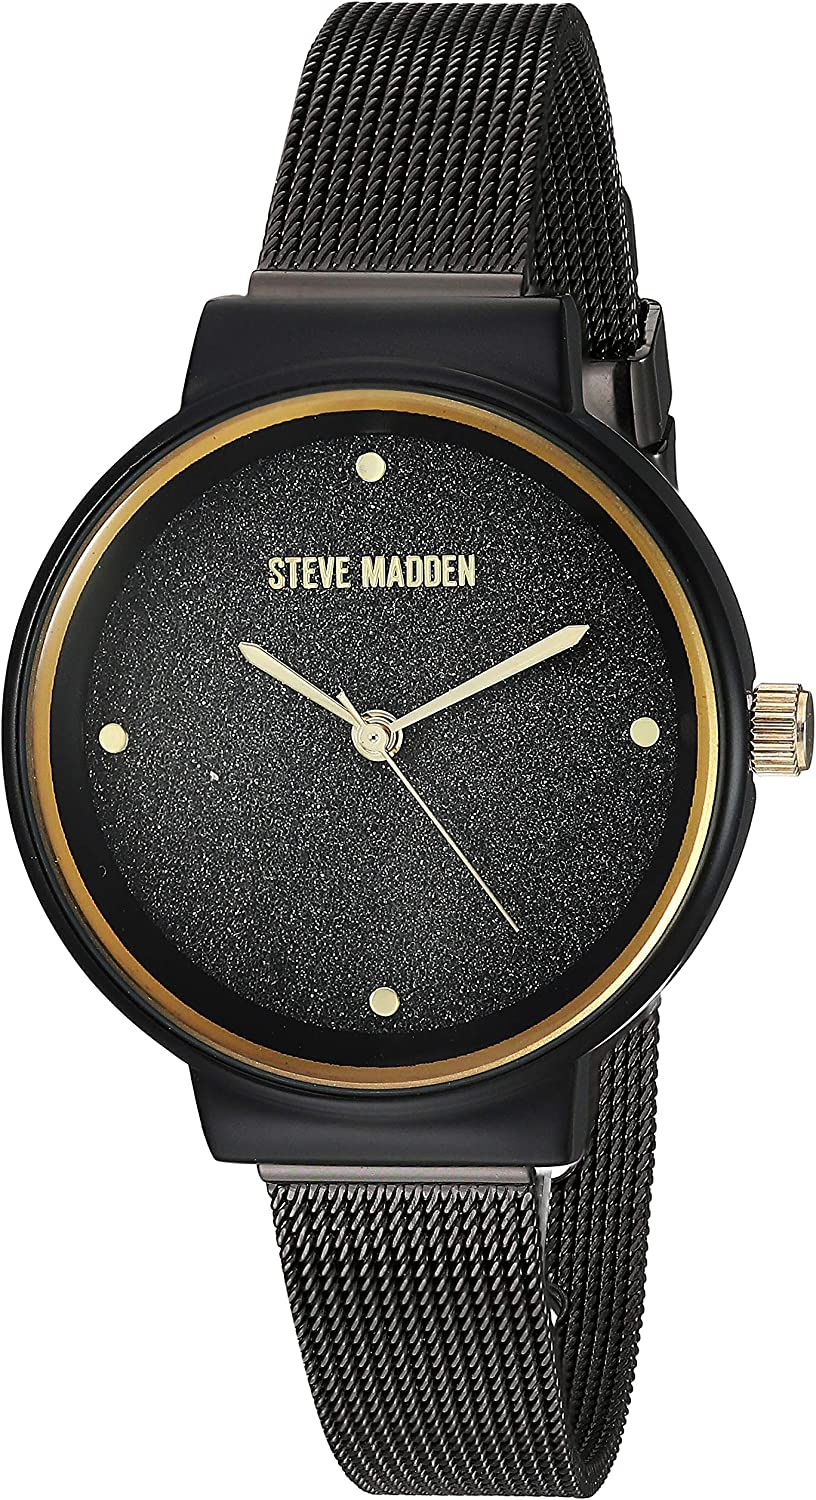 Steve Madden Mesh and Link Women's Watch Set (SMWS052) Black